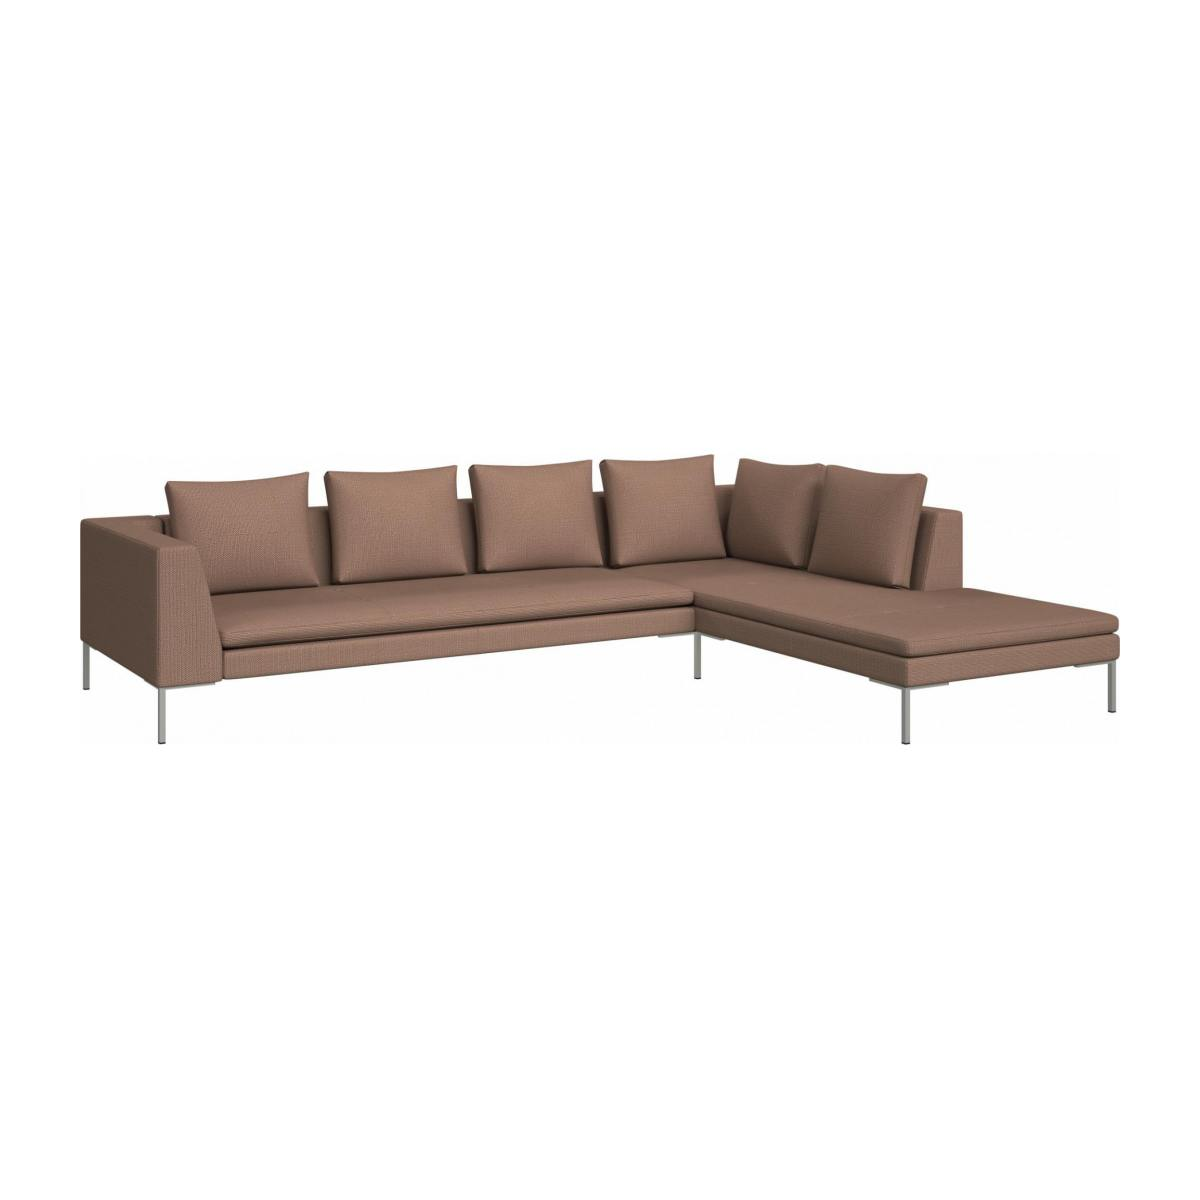 3 seater sofa with chaise longue on the right in Fasoli fabric, jatoba brown  n°2